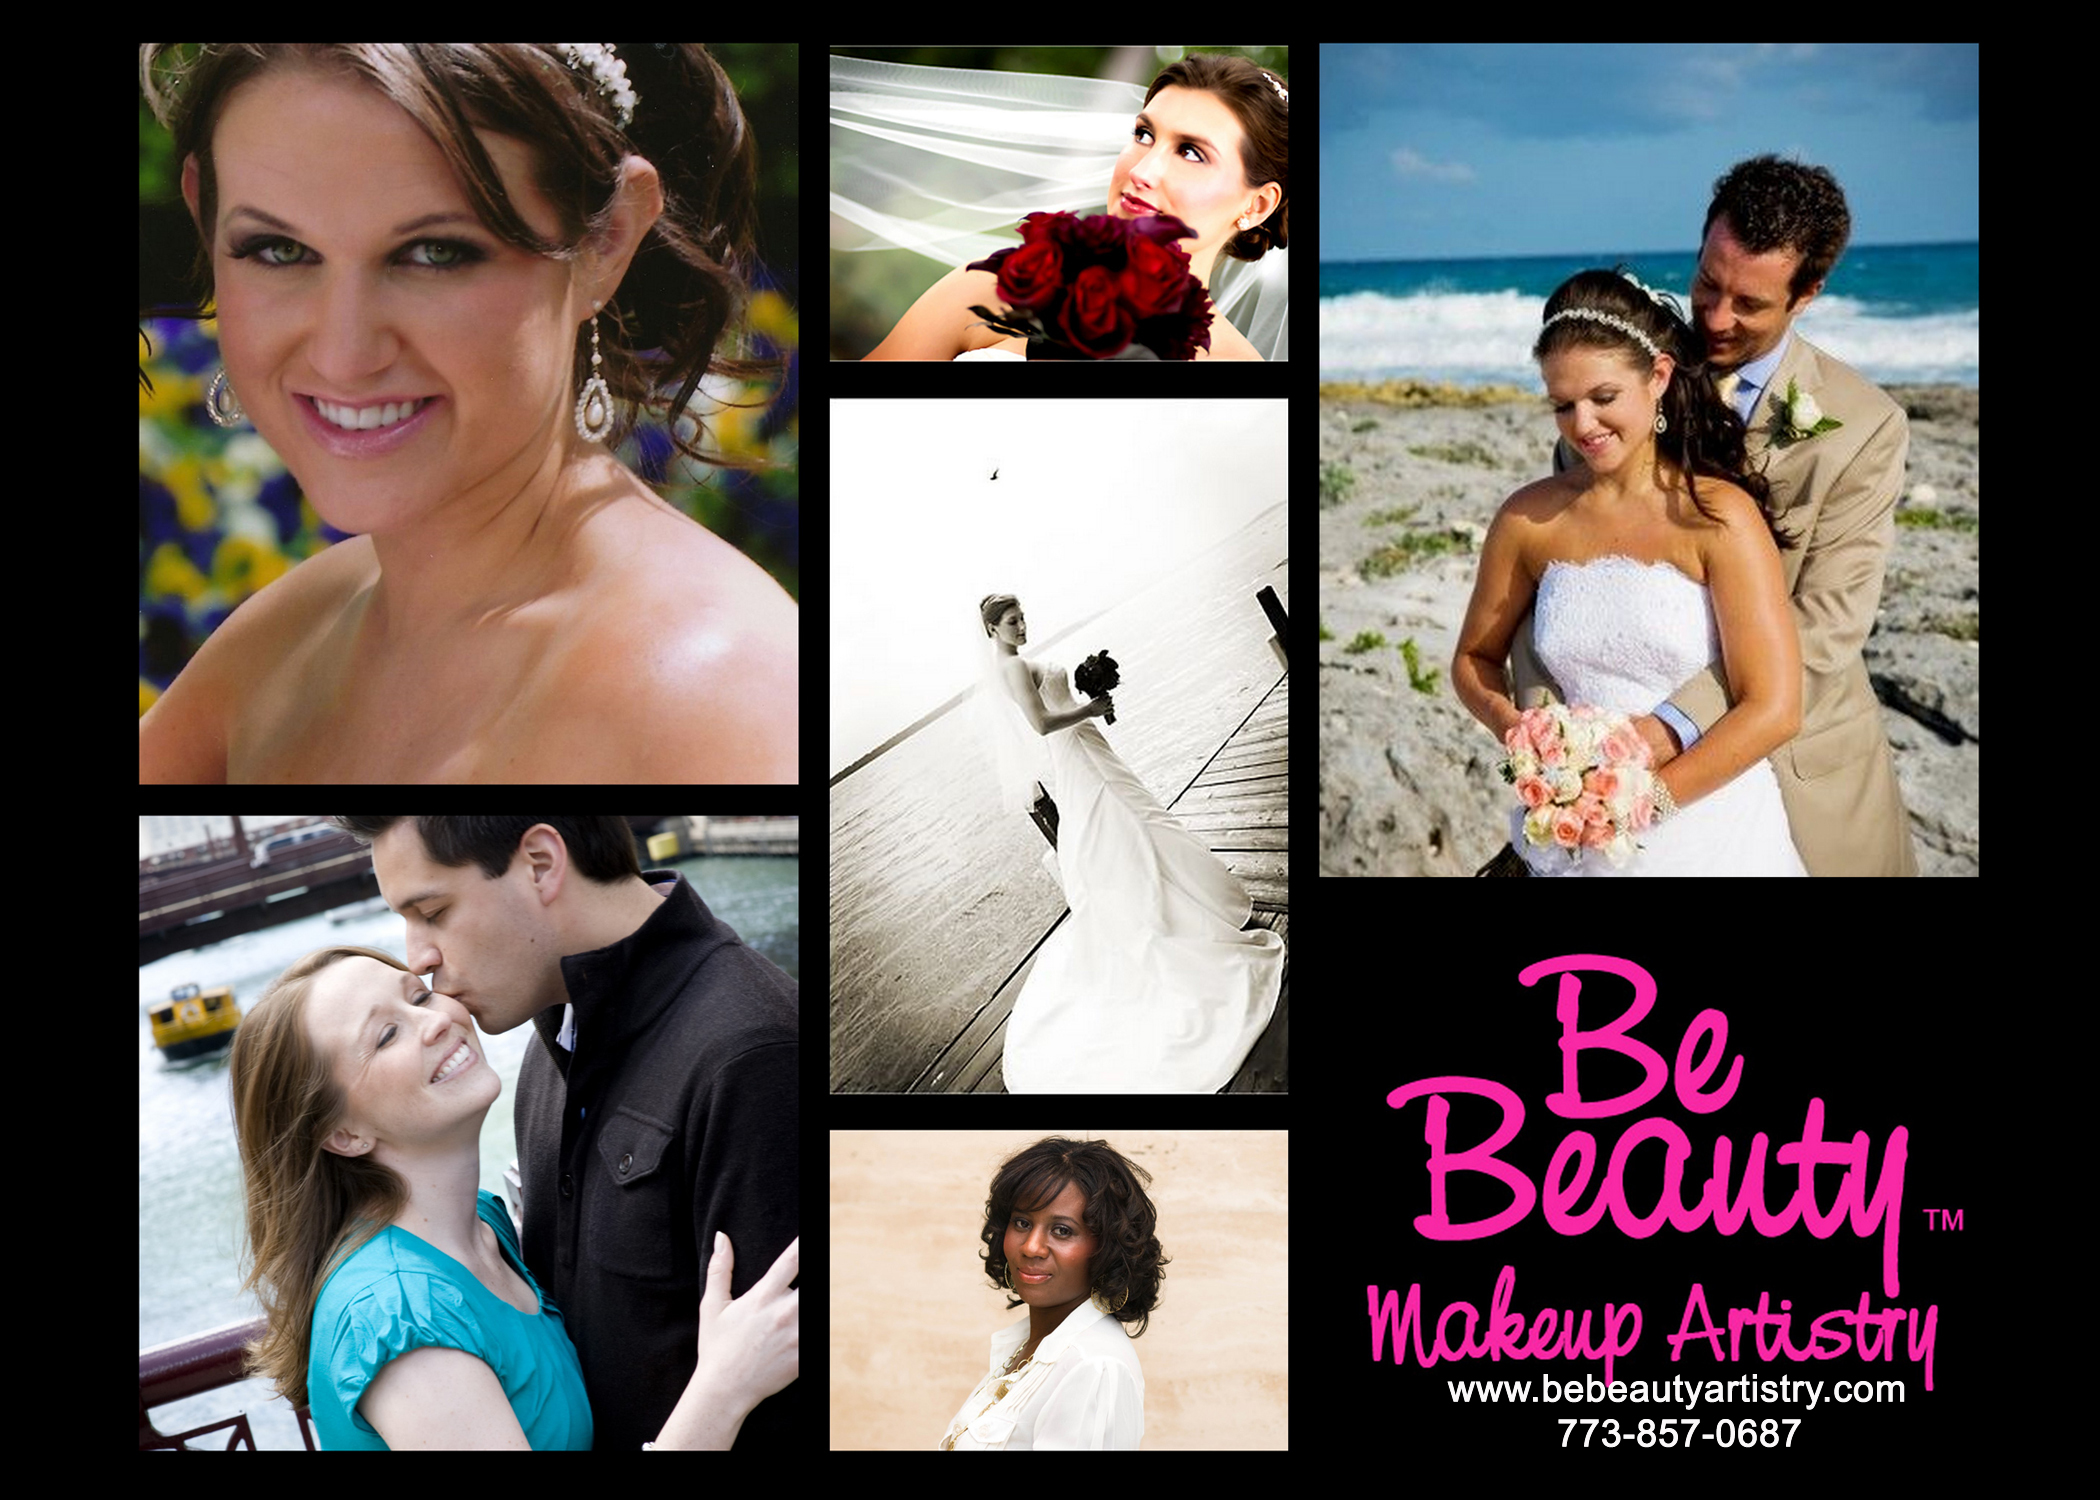 Beauty, Makeup, Wedding, Bridal, Airbrush, Be beauty makeup artistry